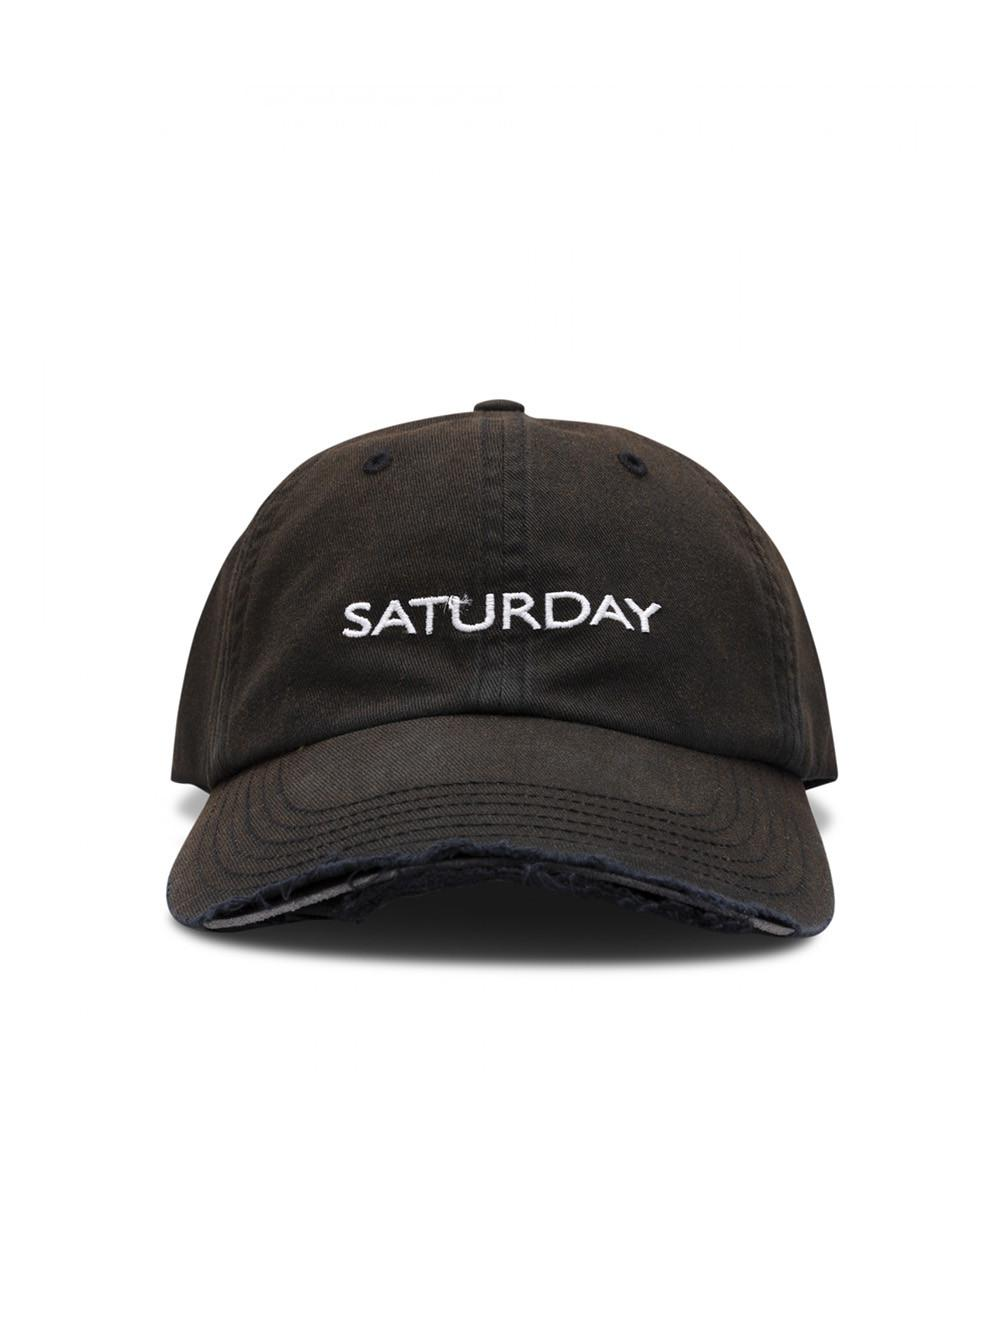 a7e5572b103 Vetements Weekday Cap in Brown for Men - Lyst